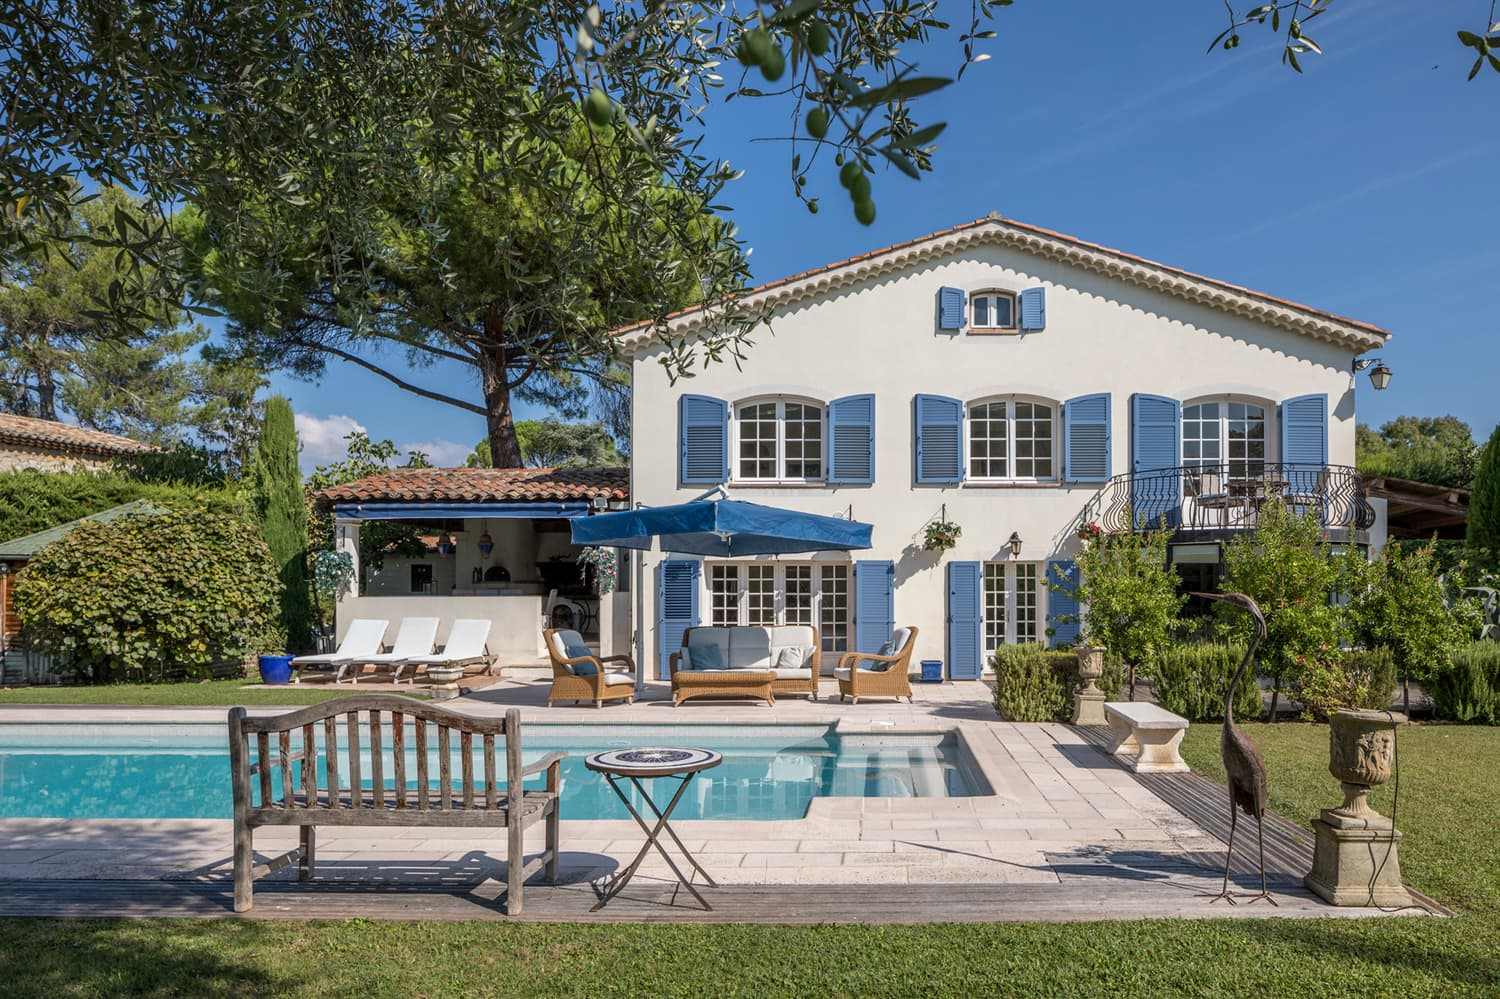 Holiday villa in Provence-Alpes-Côte d'Azur with private, heated pool